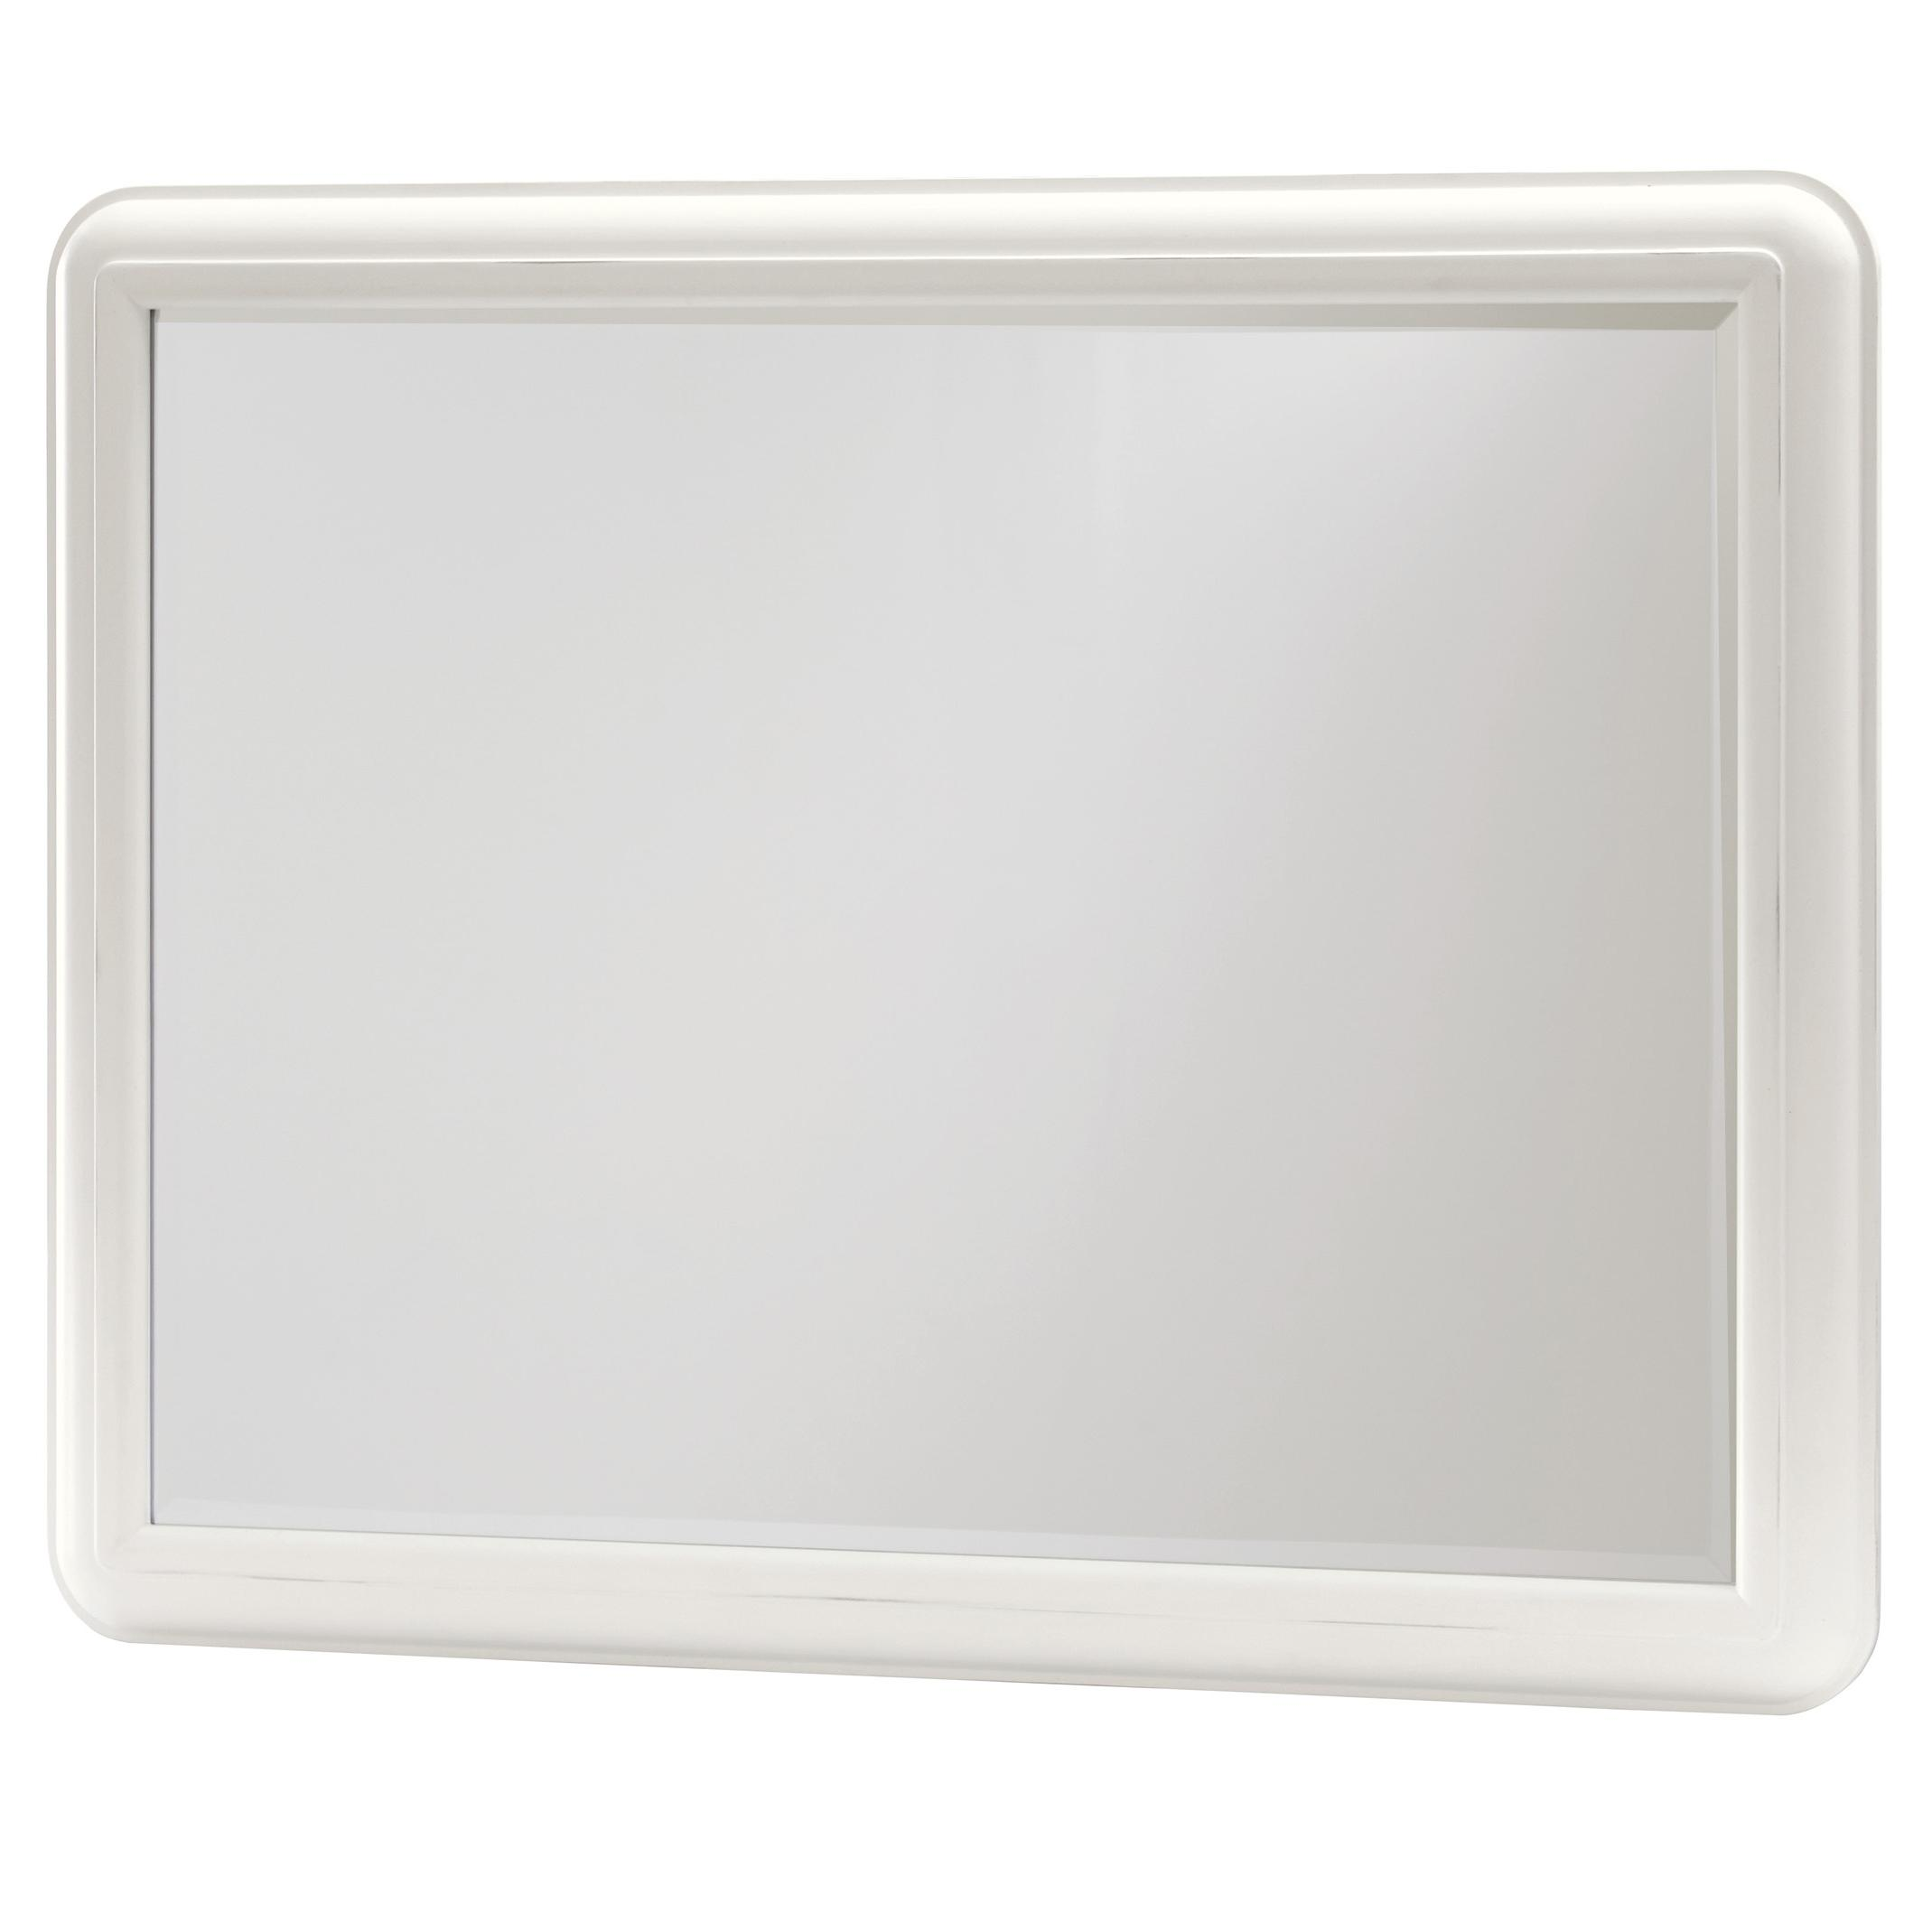 Smartstuff Black and White Mirror - Item Number: 437A032